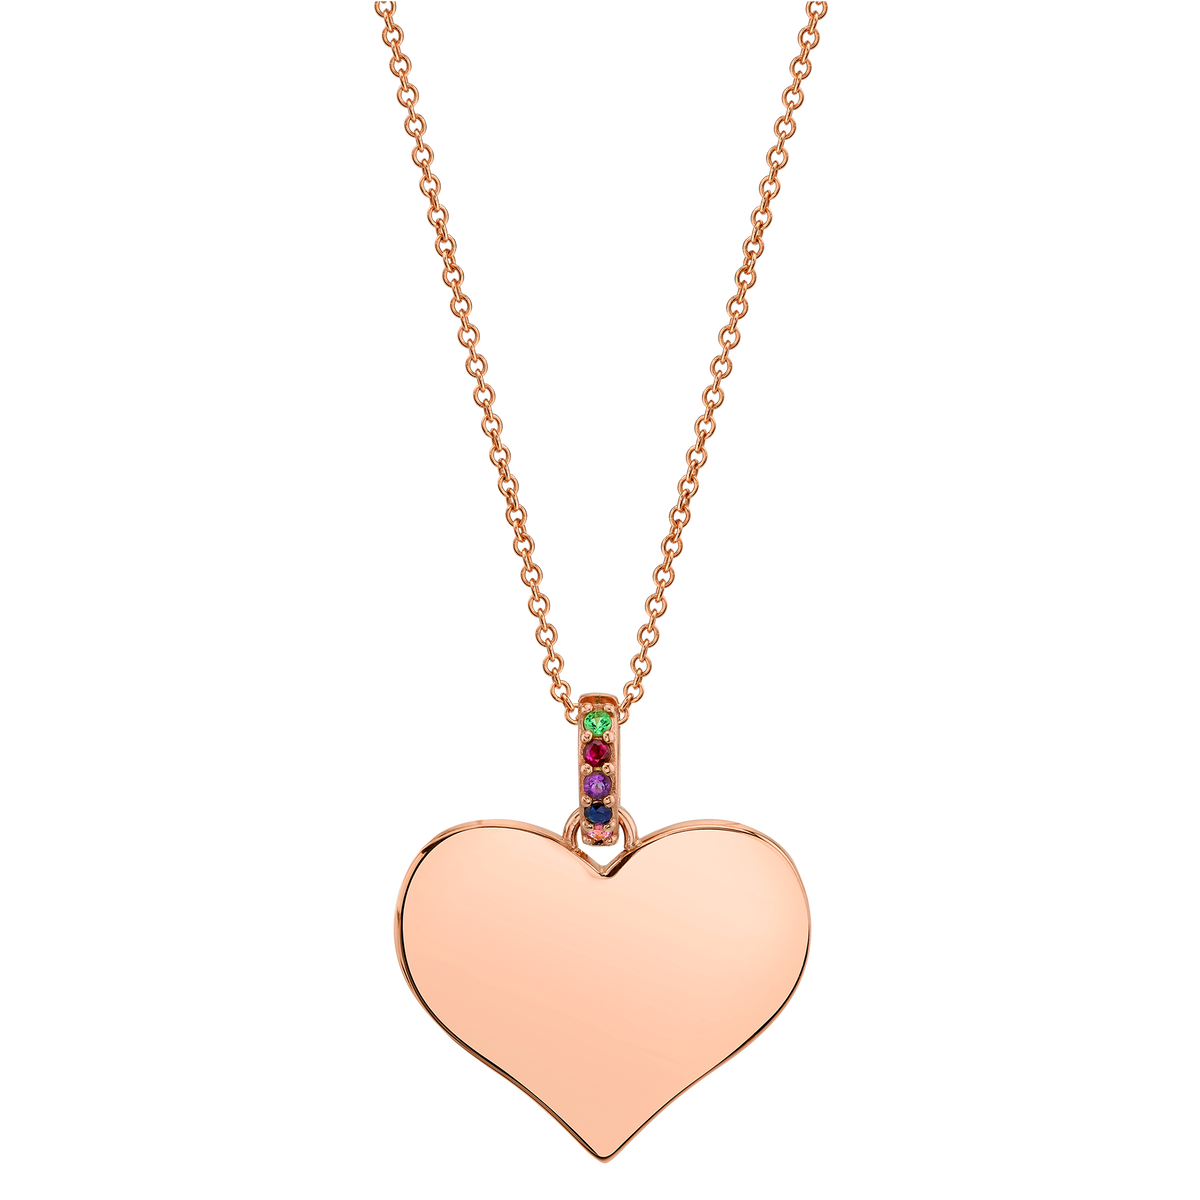 WIDE HEART PENDANT WITH RAINBOW BAIL